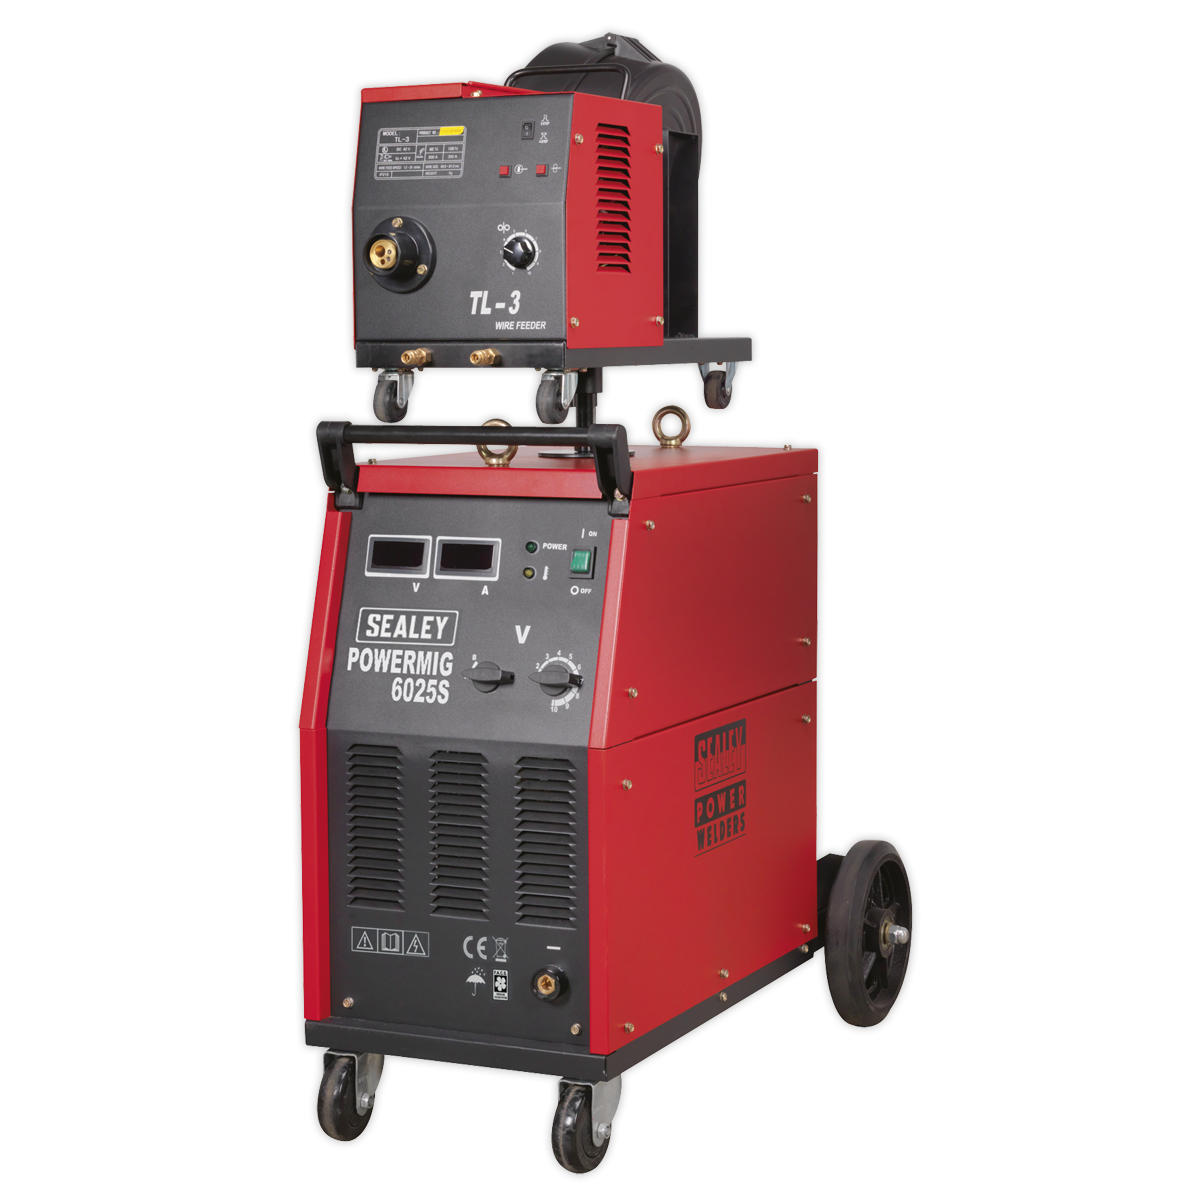 Professional MIG Welder 250A 415V 3ph with Binzel® Euro Torch & Portable Wire Drive